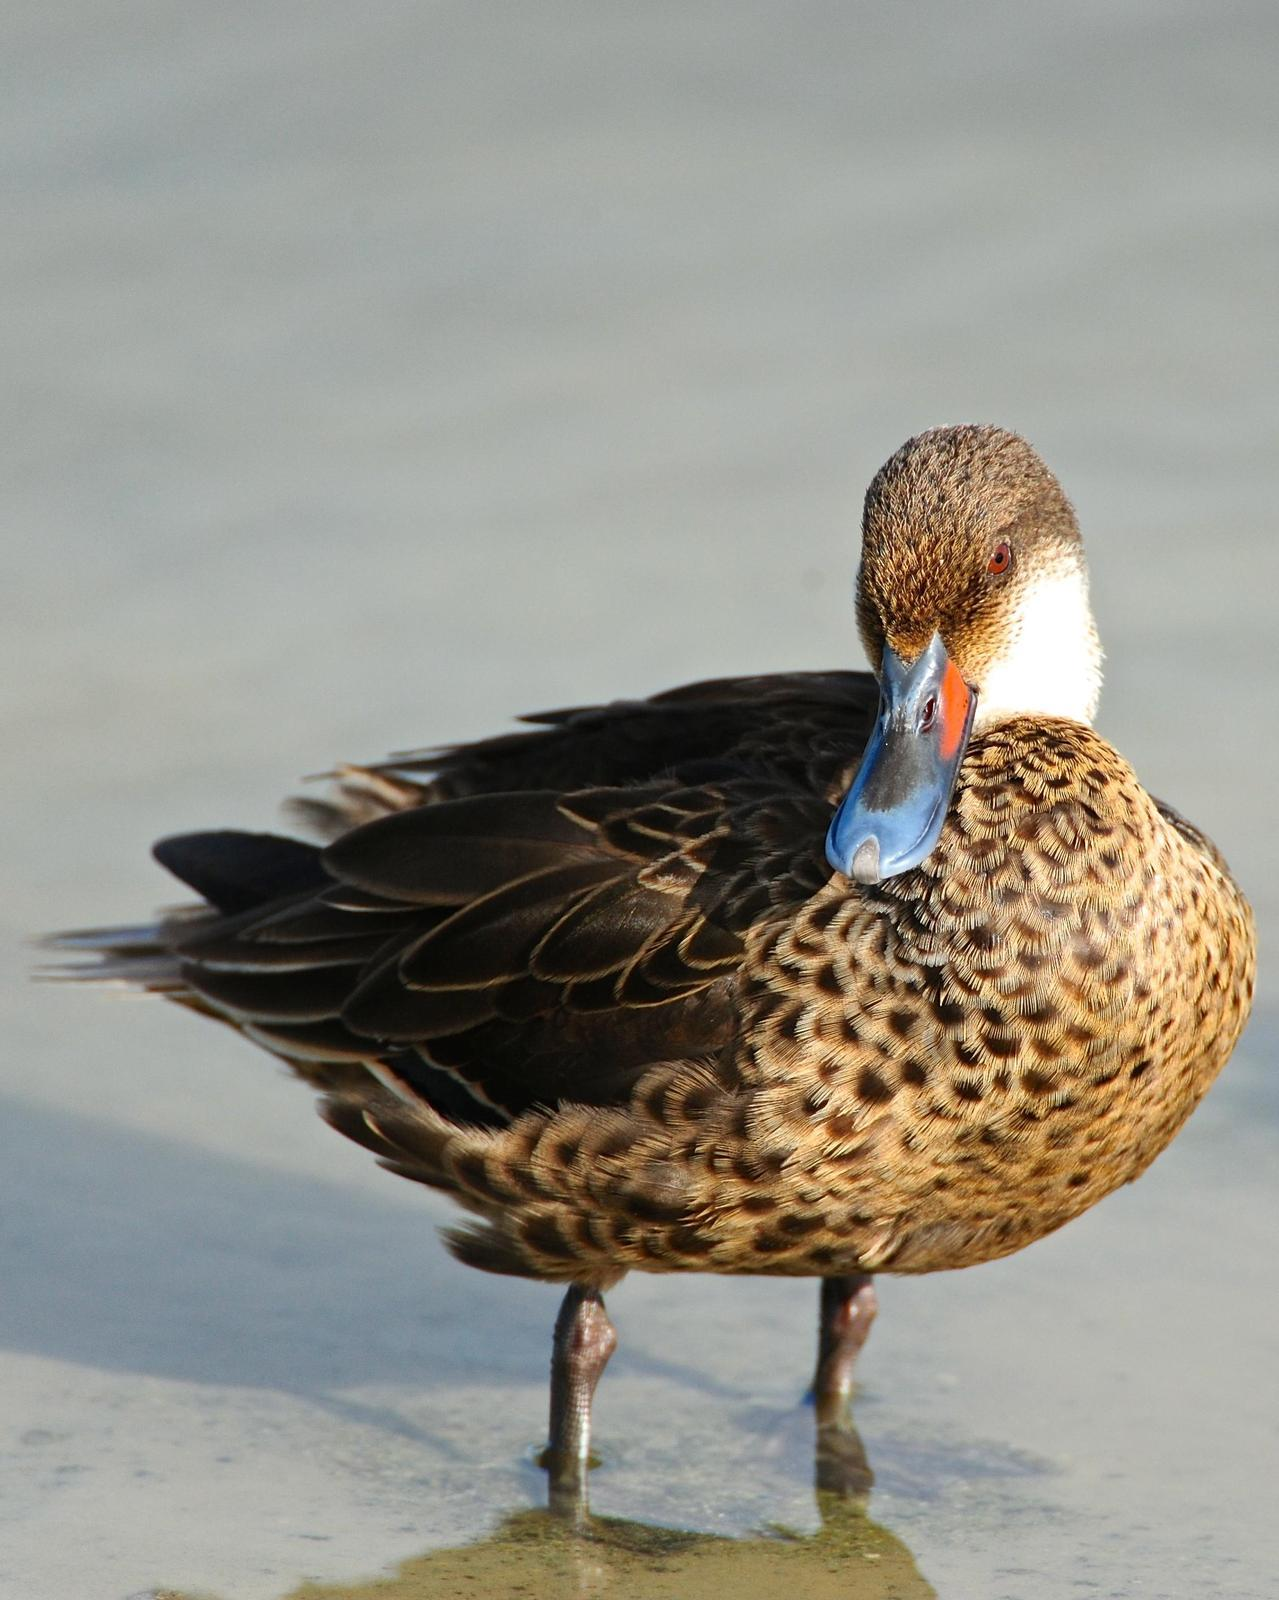 White-cheeked Pintail (Galapagos) Photo by Gerald Friesen